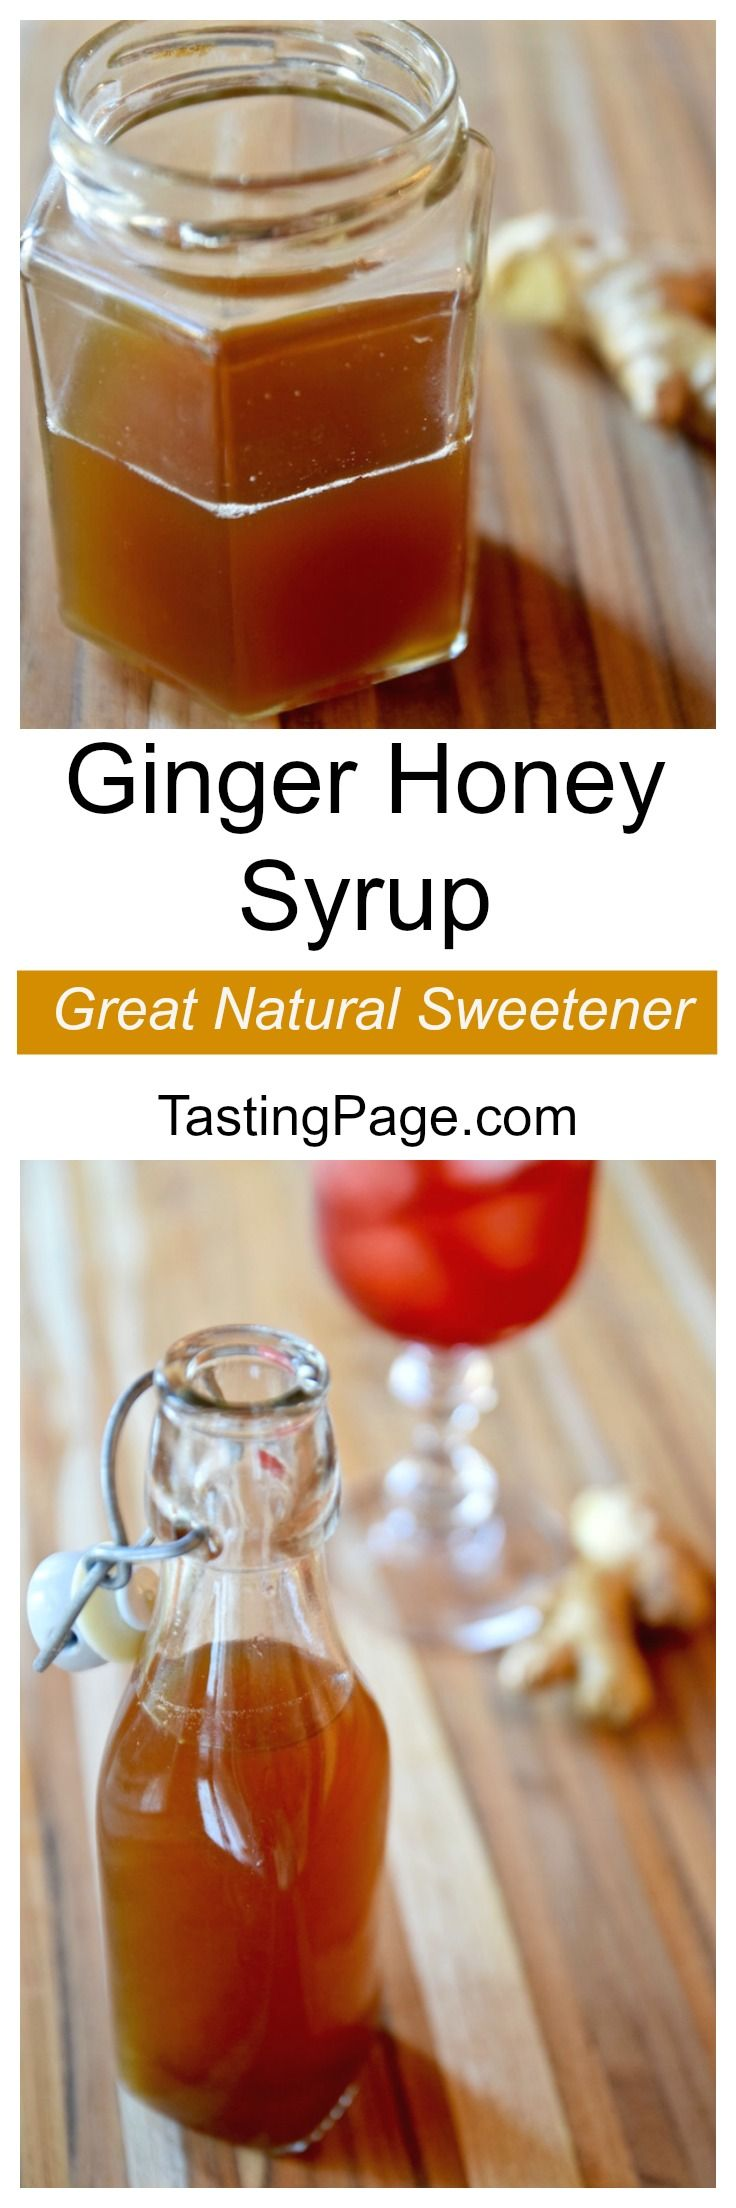 3 ingredient honey ginger syrup - a great natural sweetener with no refined sugar. Add it to hot or cold tea or your favorite cocktail | TastingPage.com